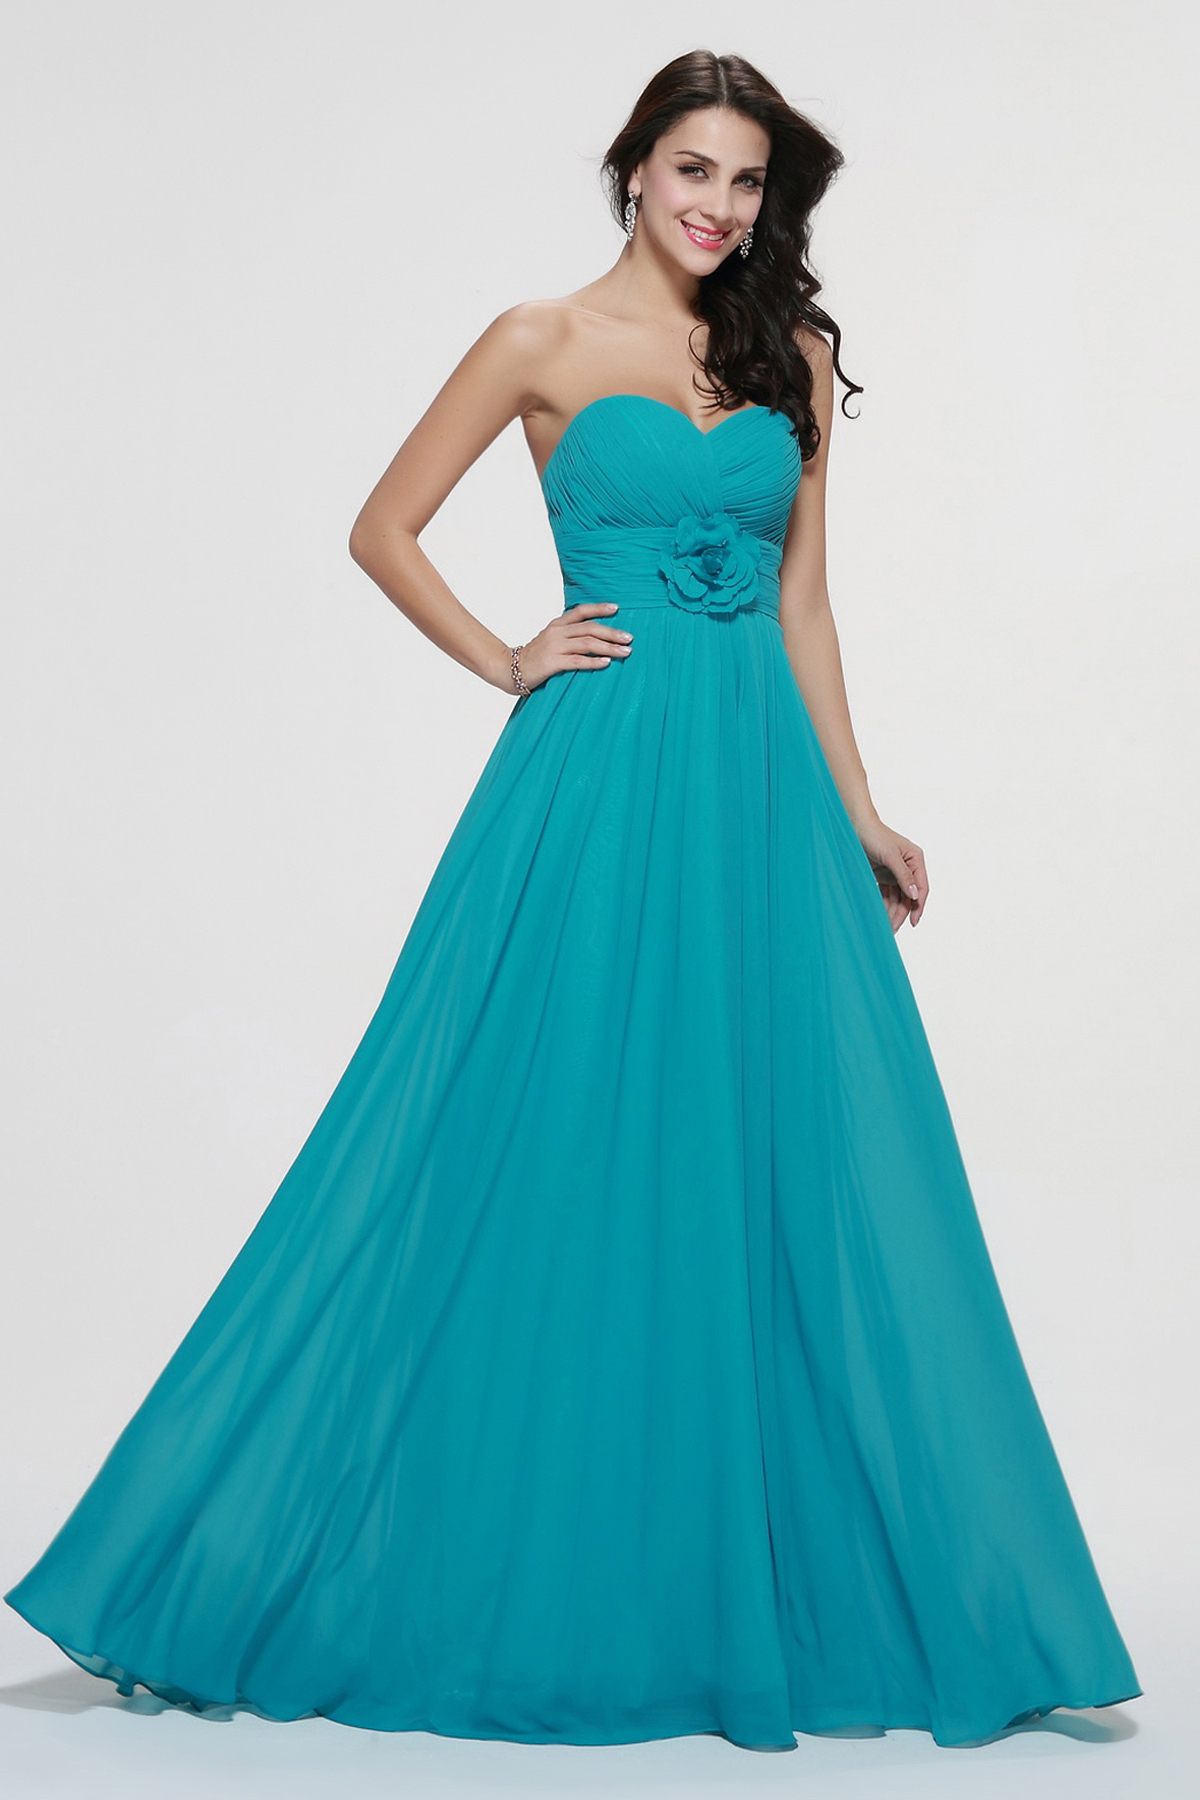 Strapless A-line Long Chiffon Prom Dress with Flowers